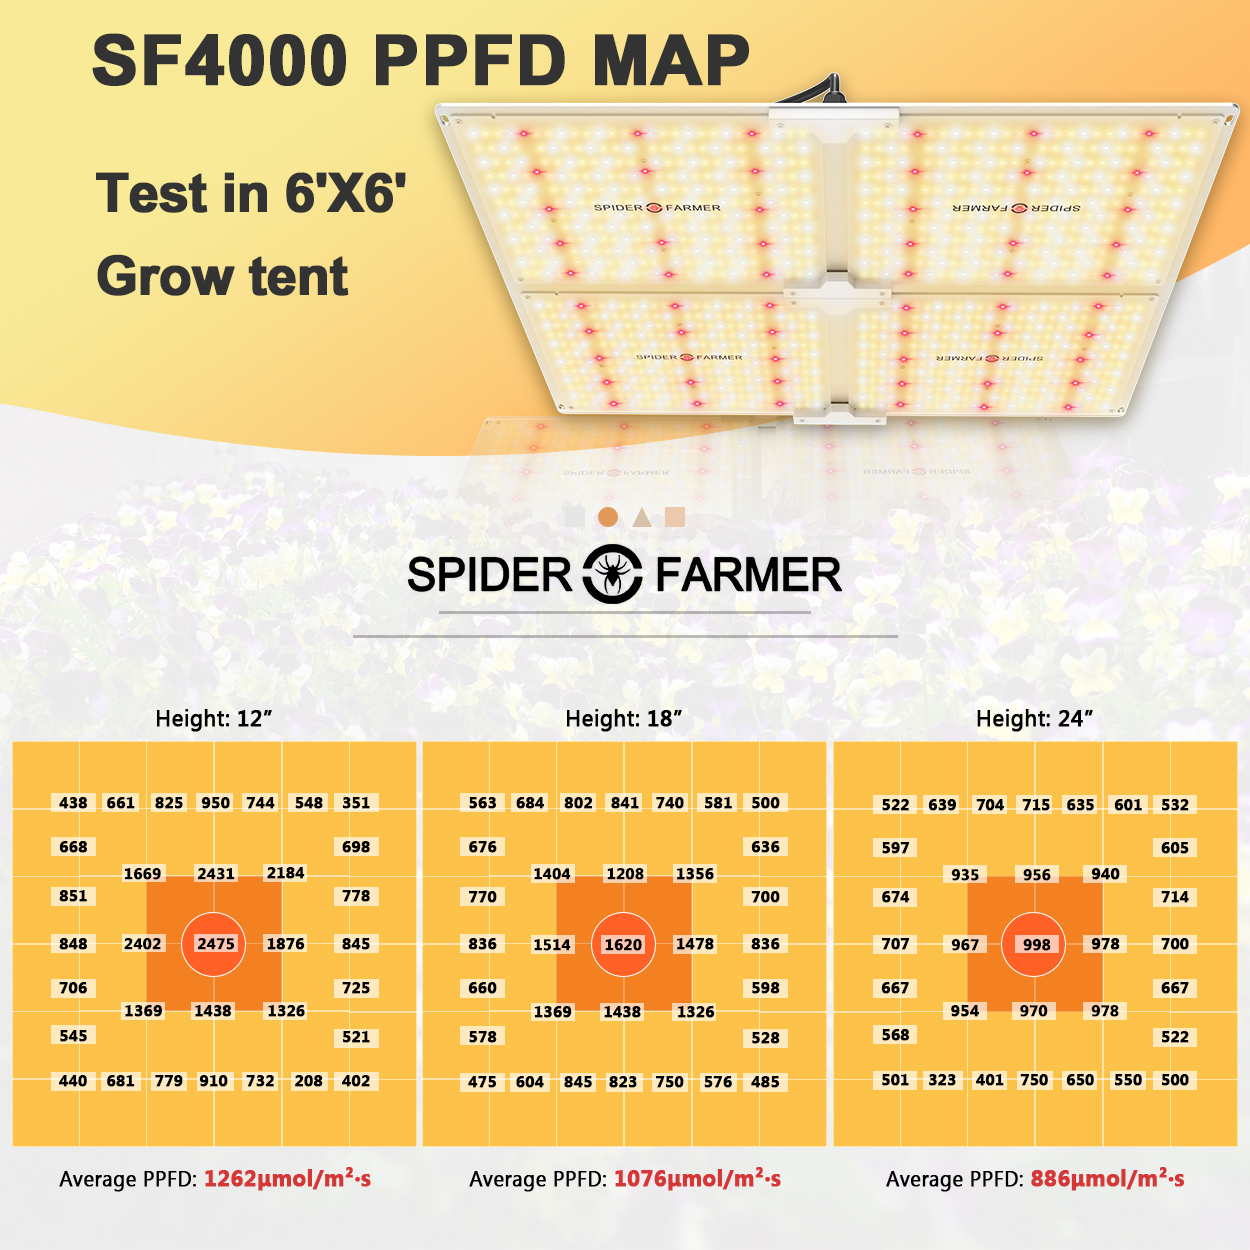 SF-4000LED PAR A PFFD informace grow panel